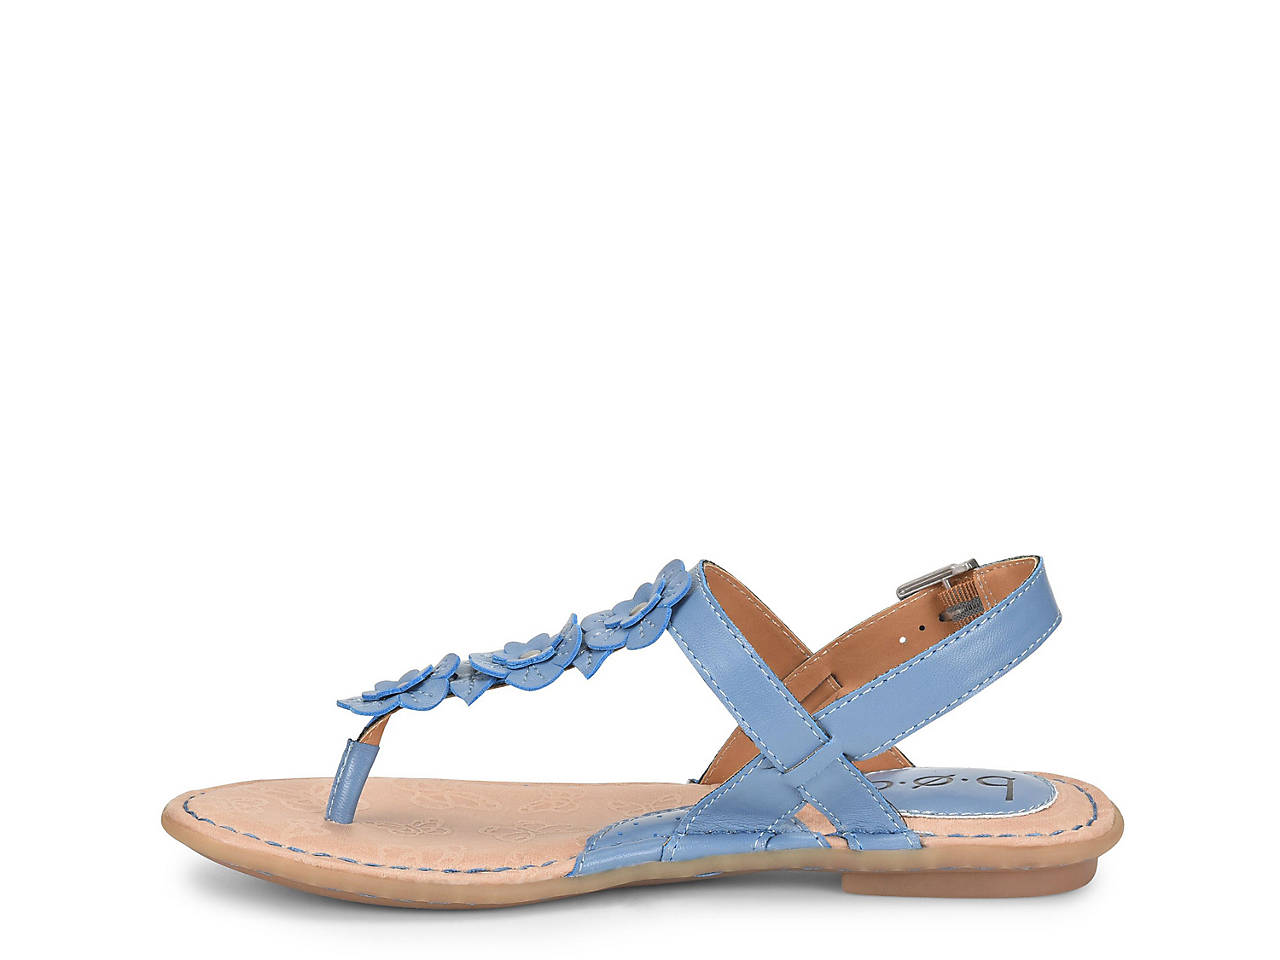 83749b7ba5dc b.o.c Almira Sandal Women s Shoes